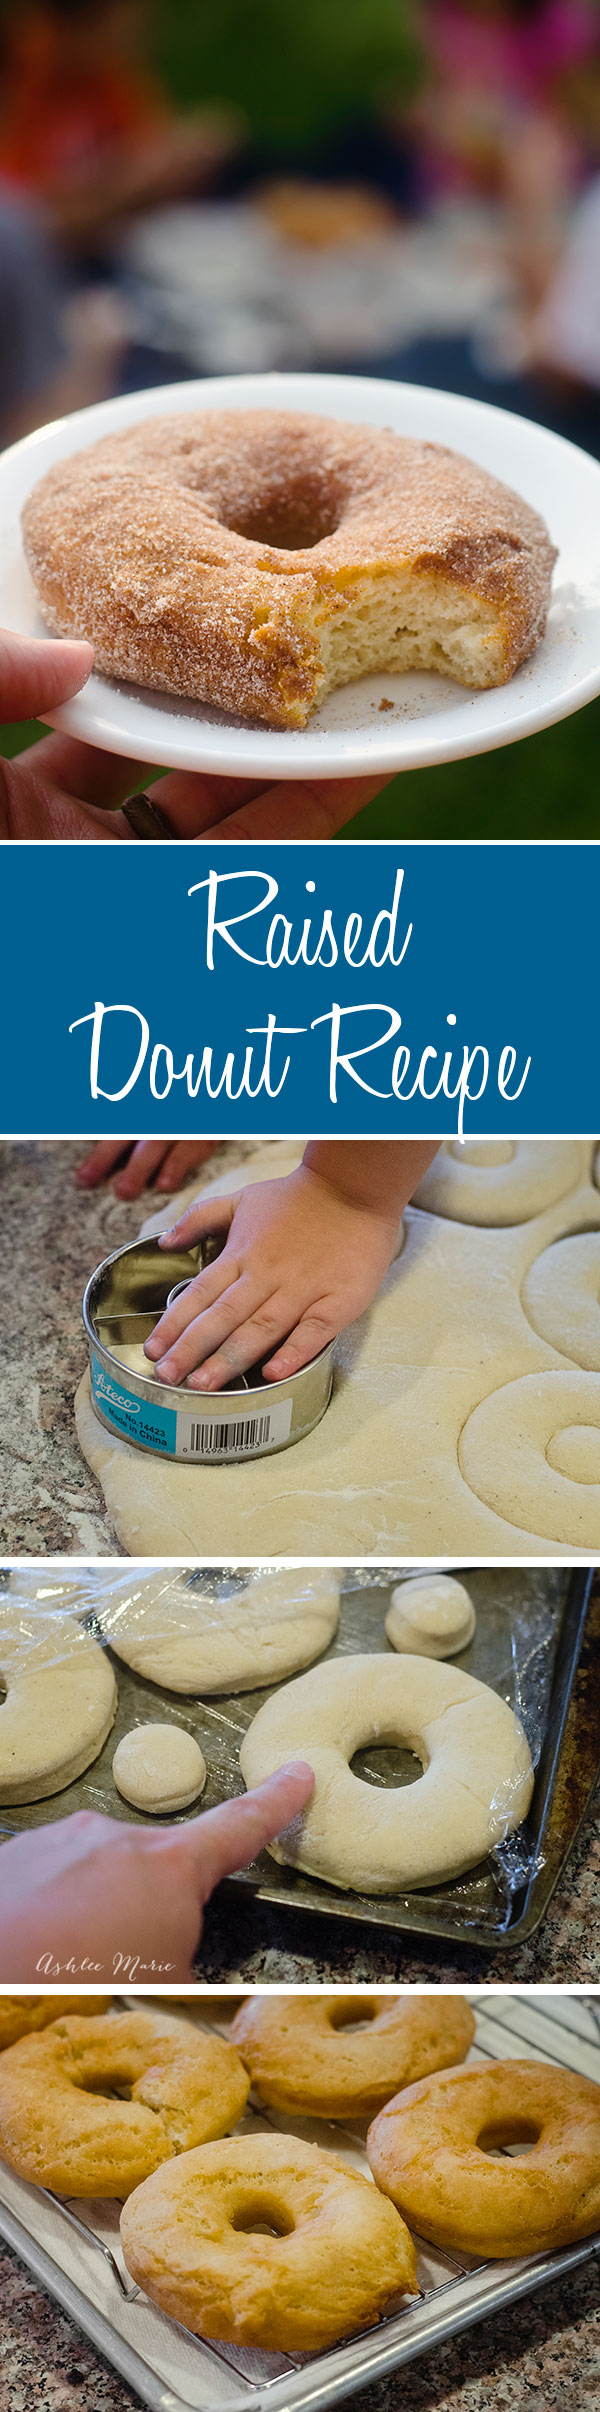 a delicious homemade raised donut recipe, that everyone loves, Great with any topping or filling